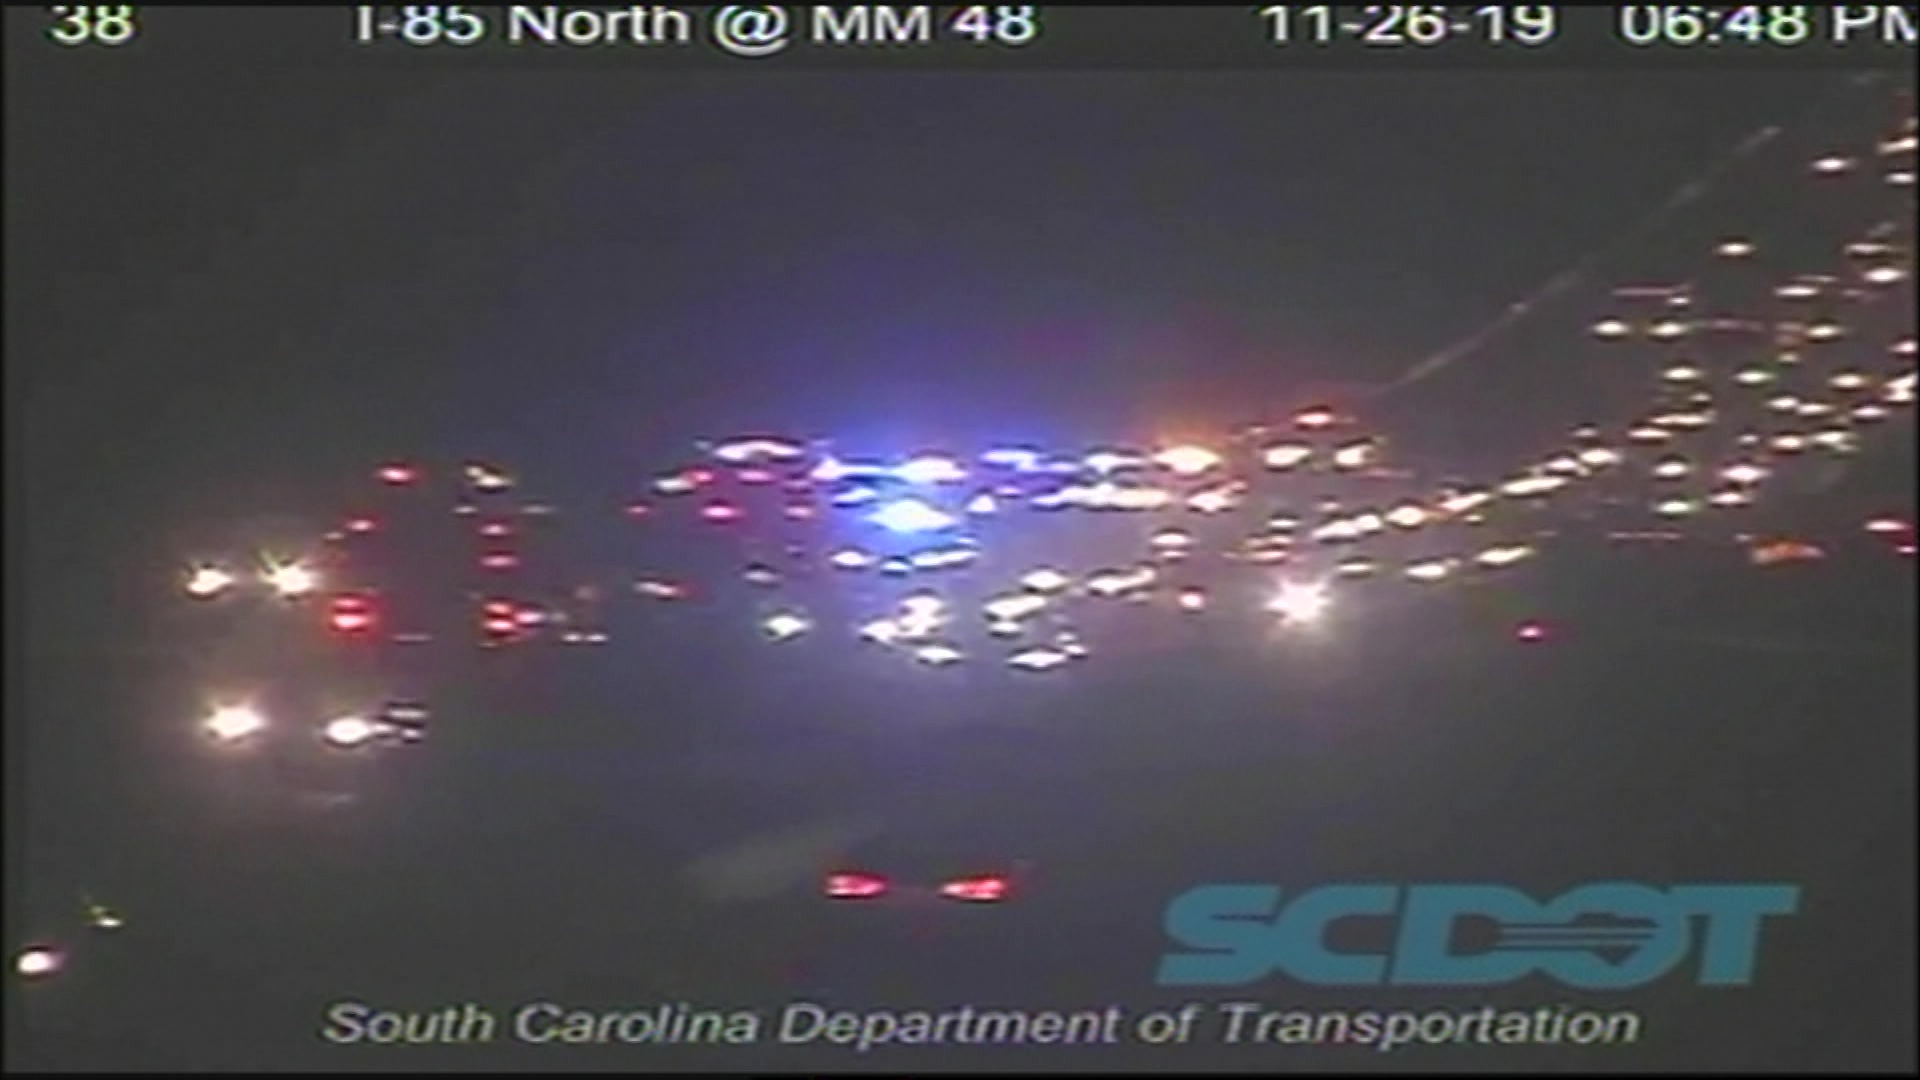 A South Carolina Department of Transportation traffic camera shows emergency vehicle at scene of crash on I-85 at Exit 48 in Greenville County, November 26, 2019